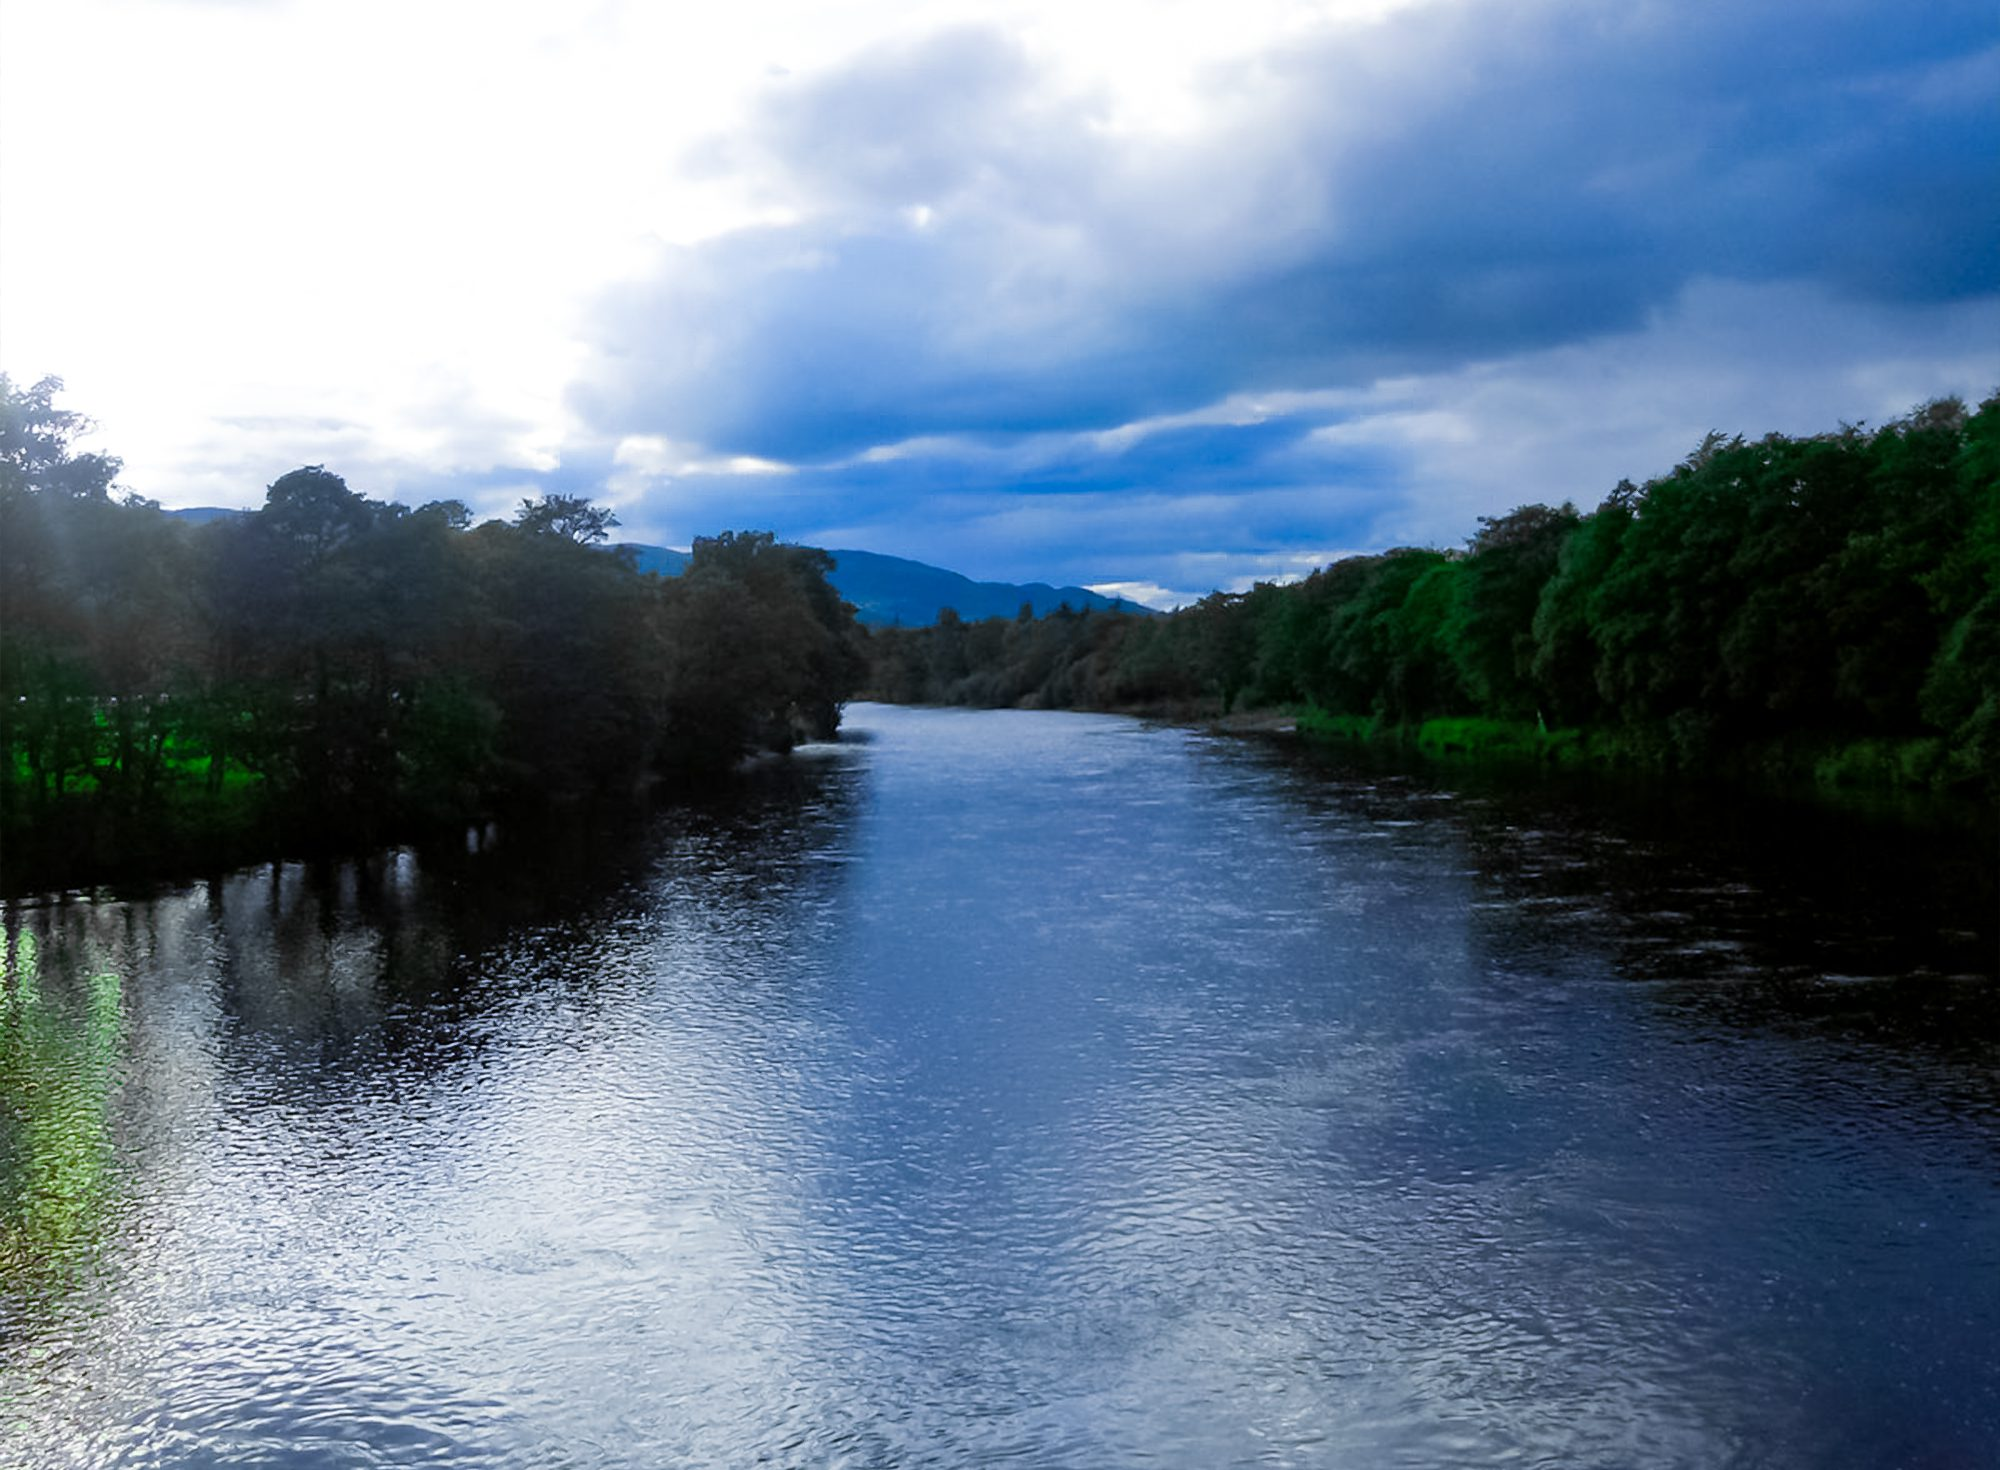 Copy of RiverTay-Pitlochry